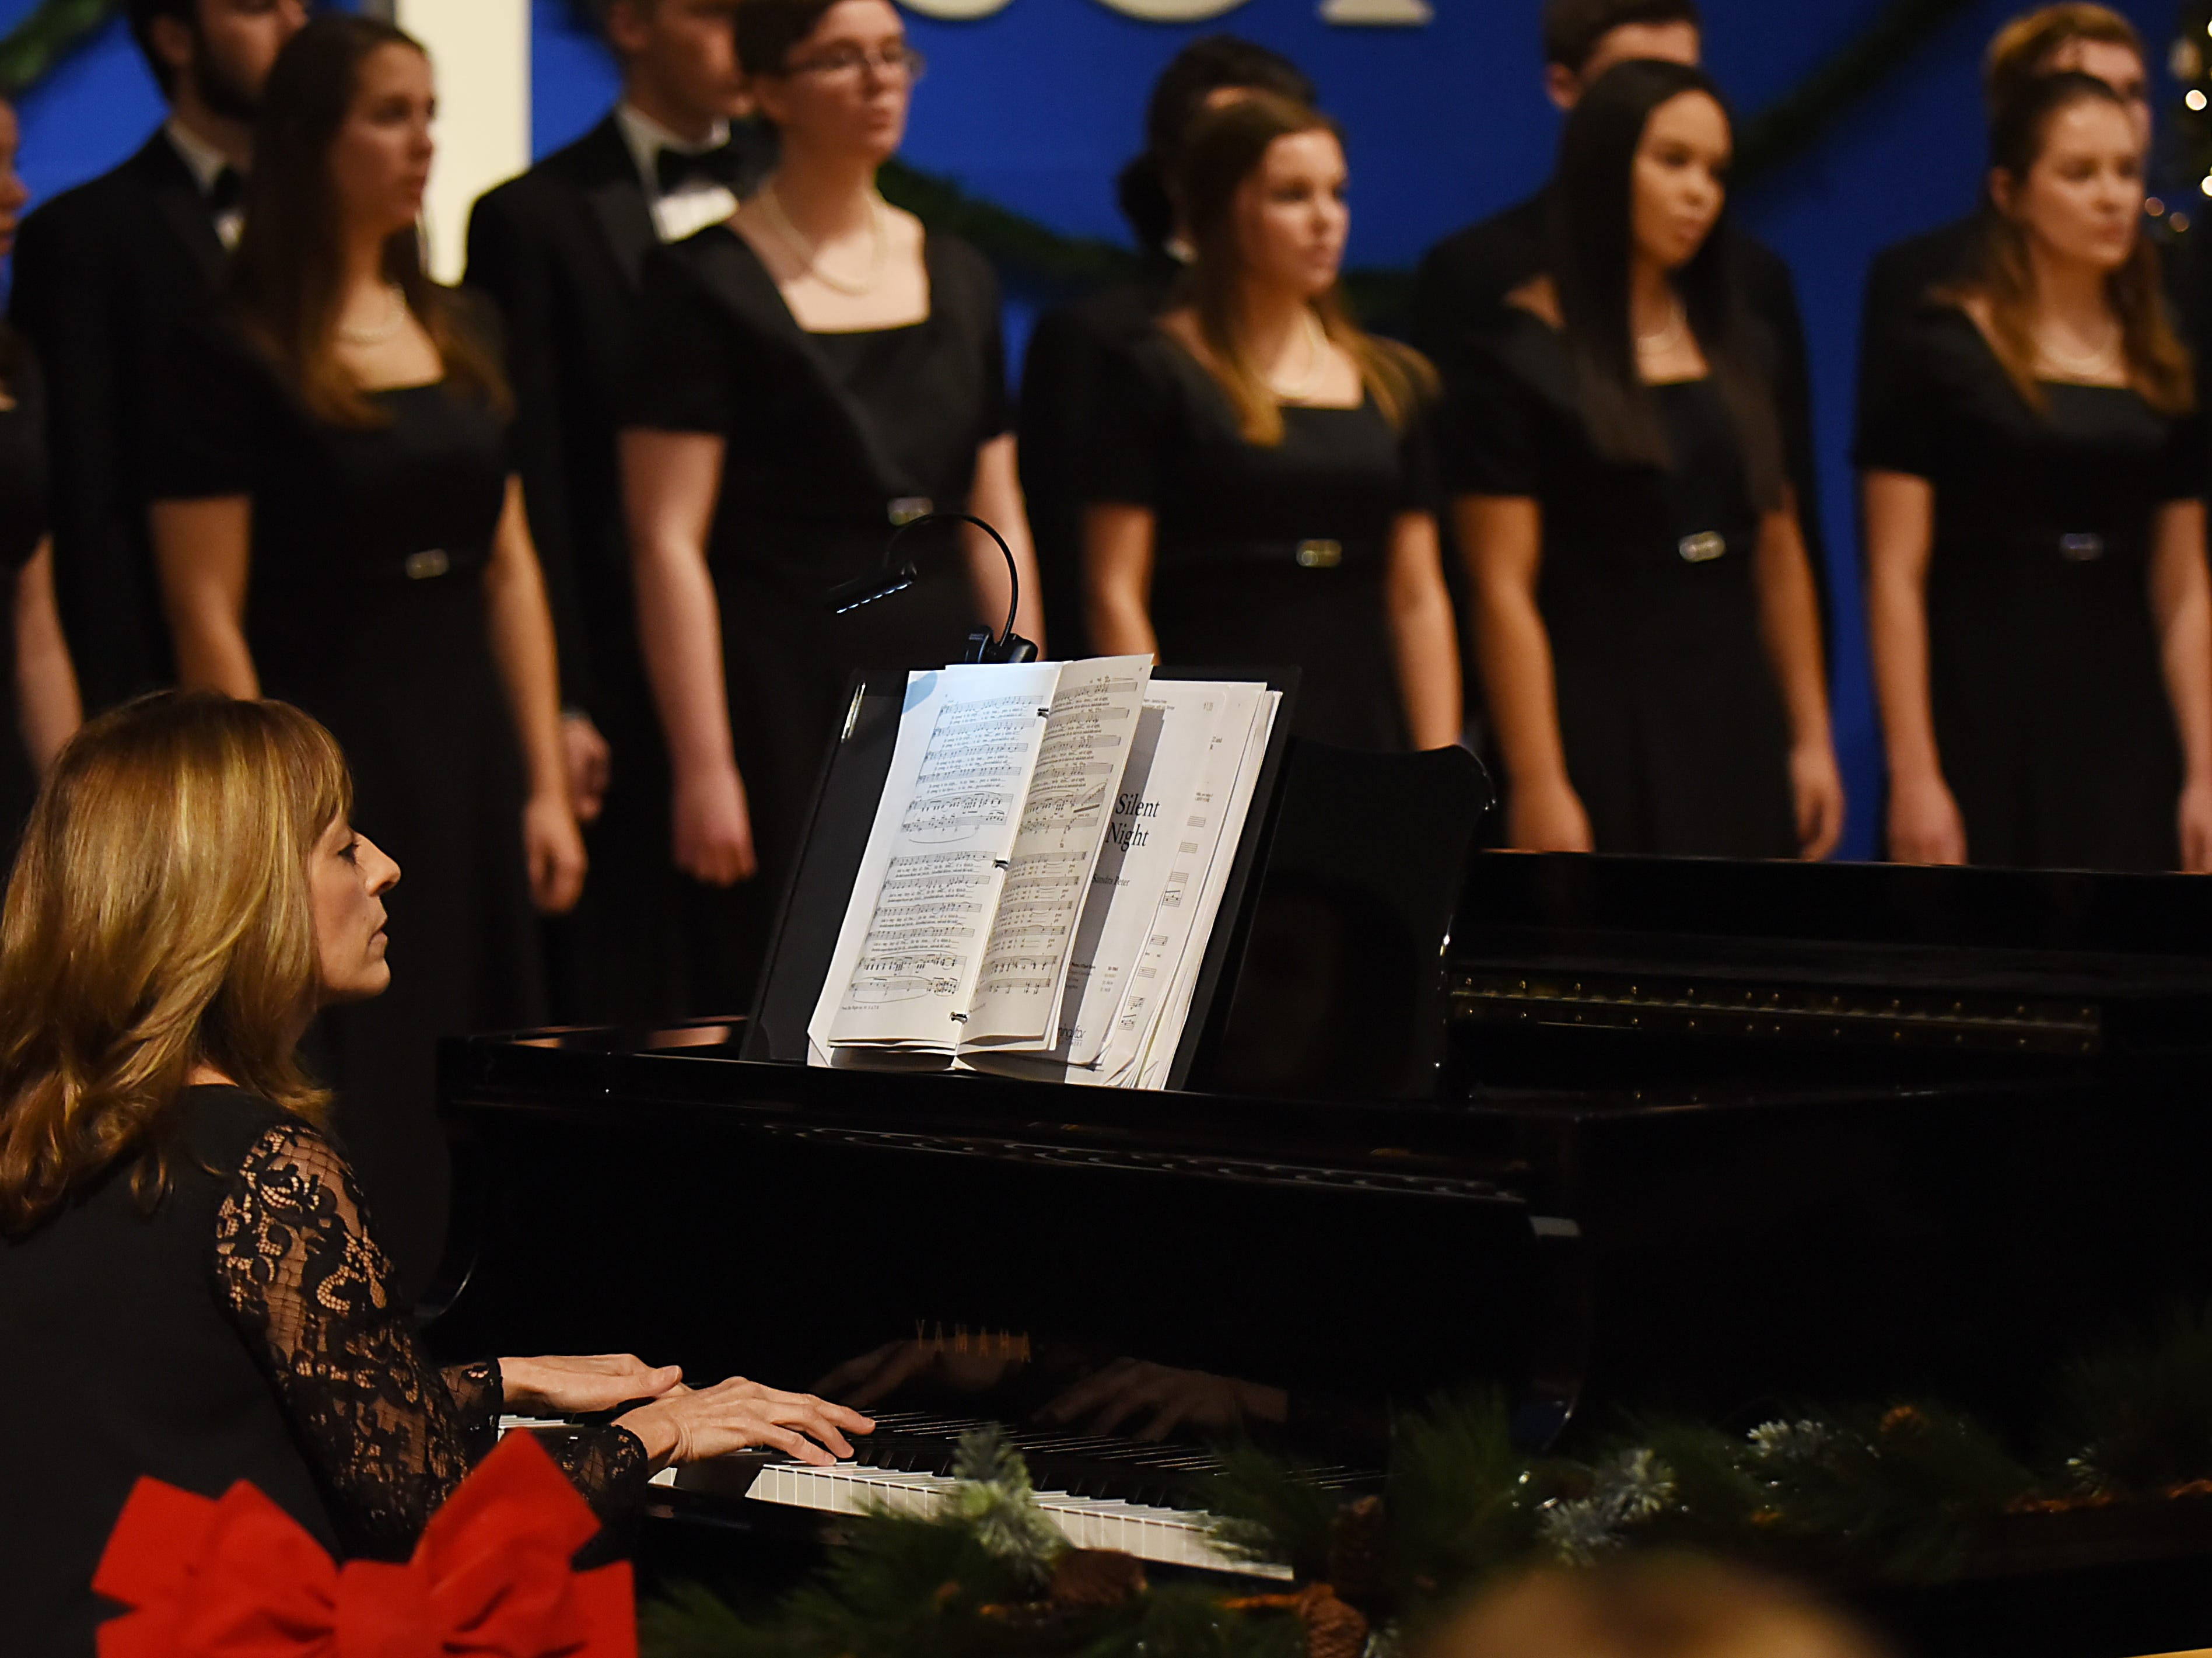 Lisa Wichman is the collaborative pianist with the Morris Knolls Madrigal Choir. Shown during a dress rehearsal at Denville Community Church in Denville on Thursday November 29, 2018 prior to their performance at the White House.